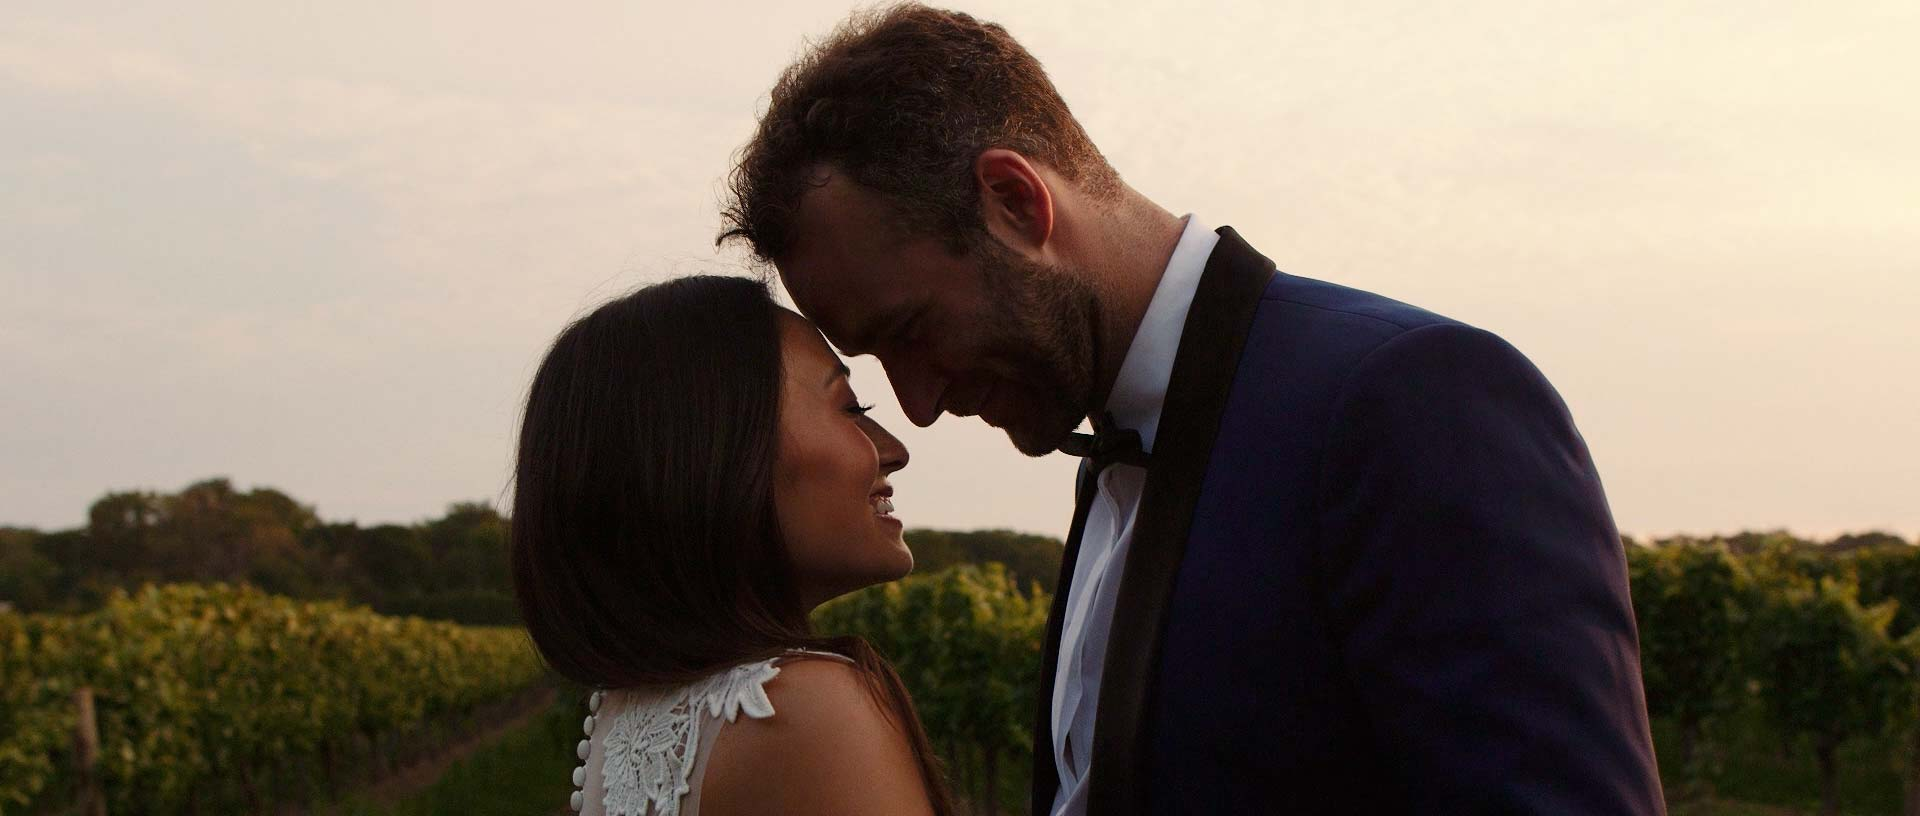 Kurtz Orchard Niagara on the Lake Wedding Videographer